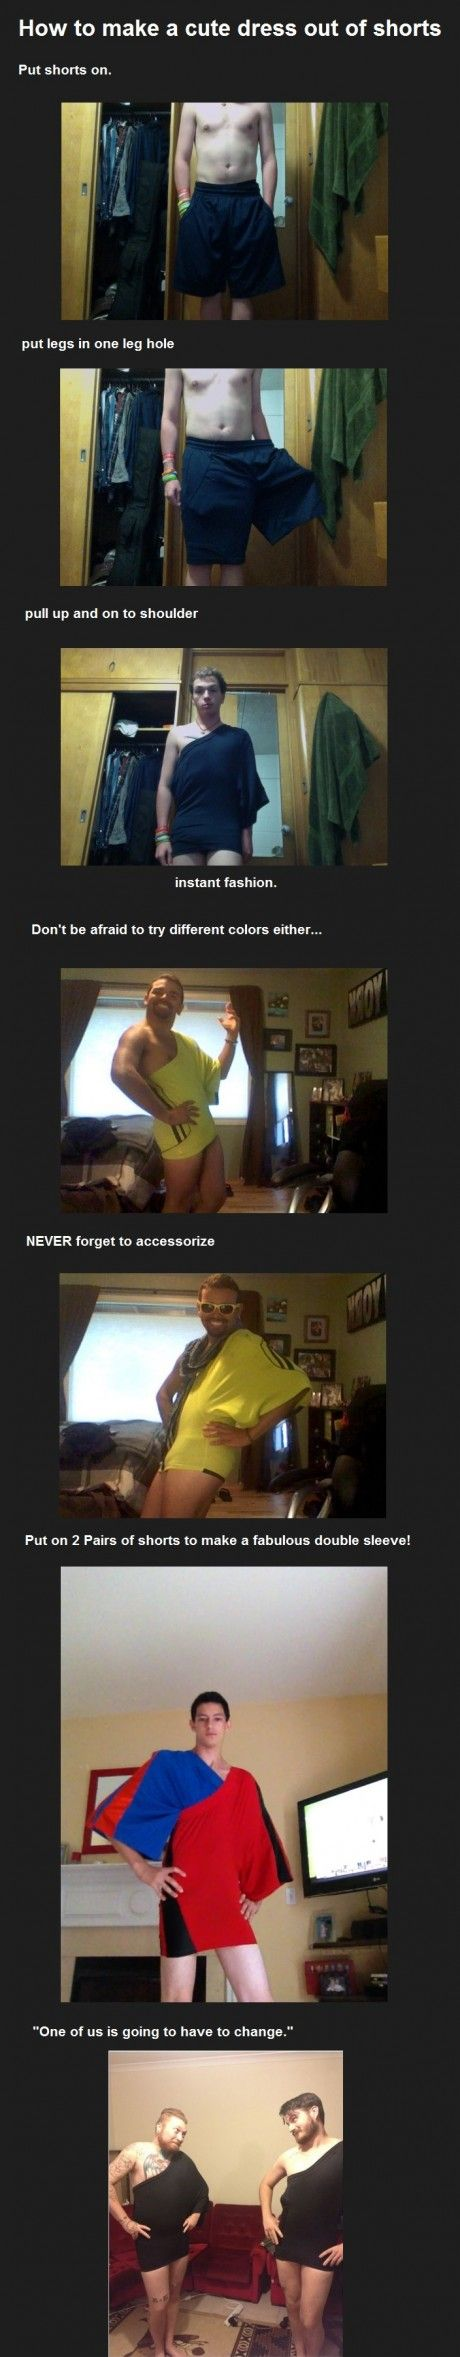 How to make a cute dress out of shorts.  This is hilarious!